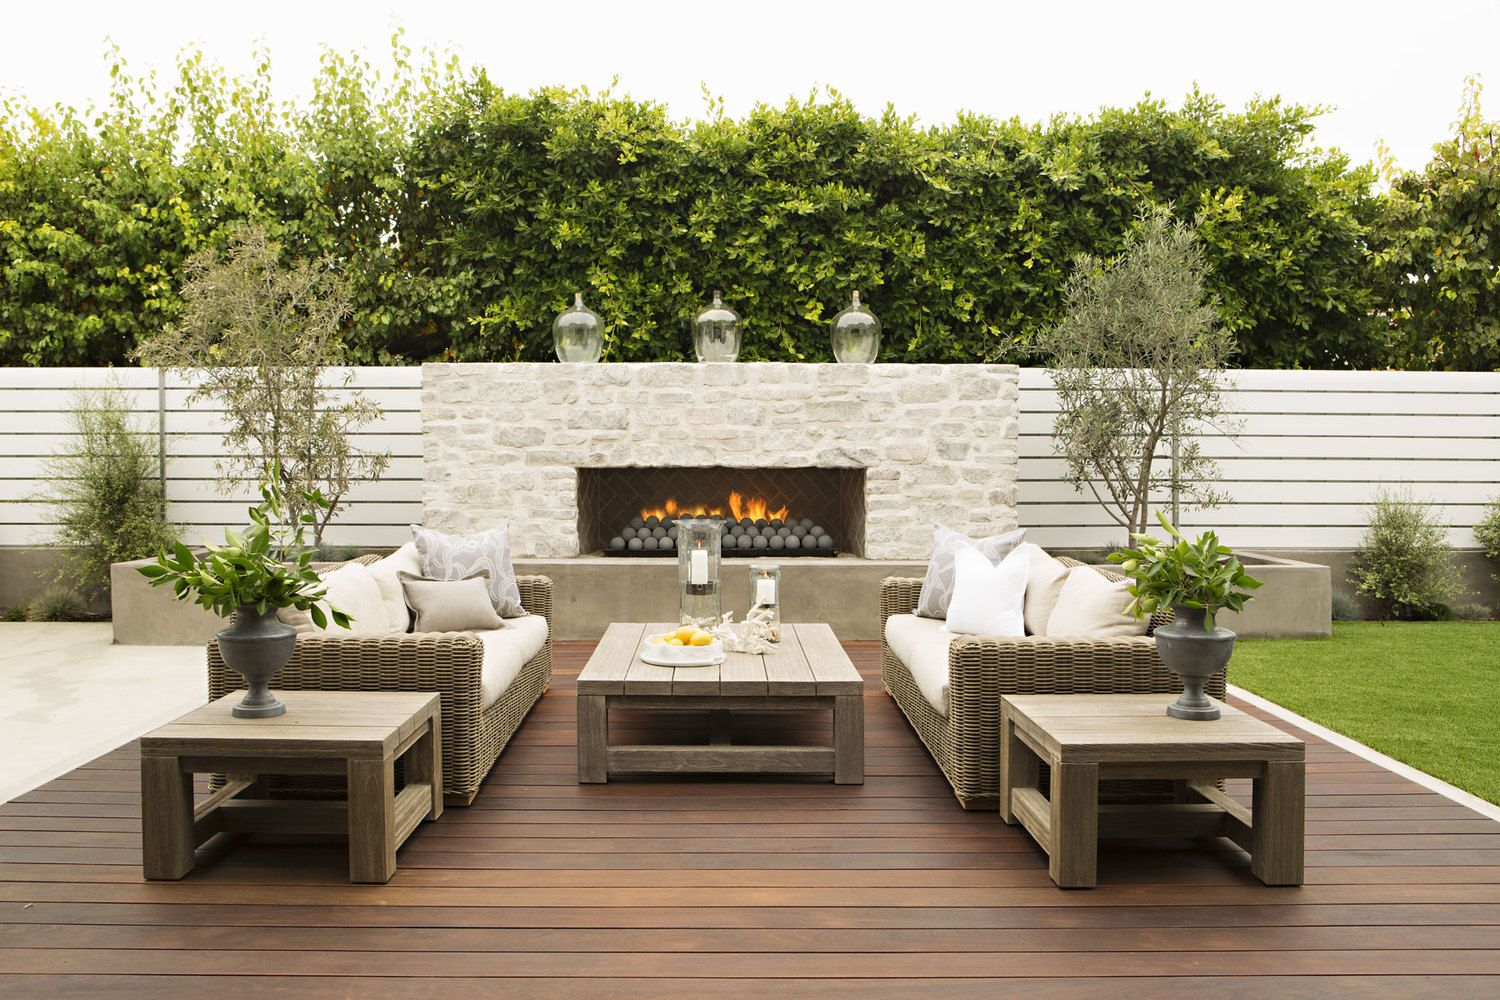 Vertical White Fence Outdoor Fireplace In The Wall Clean